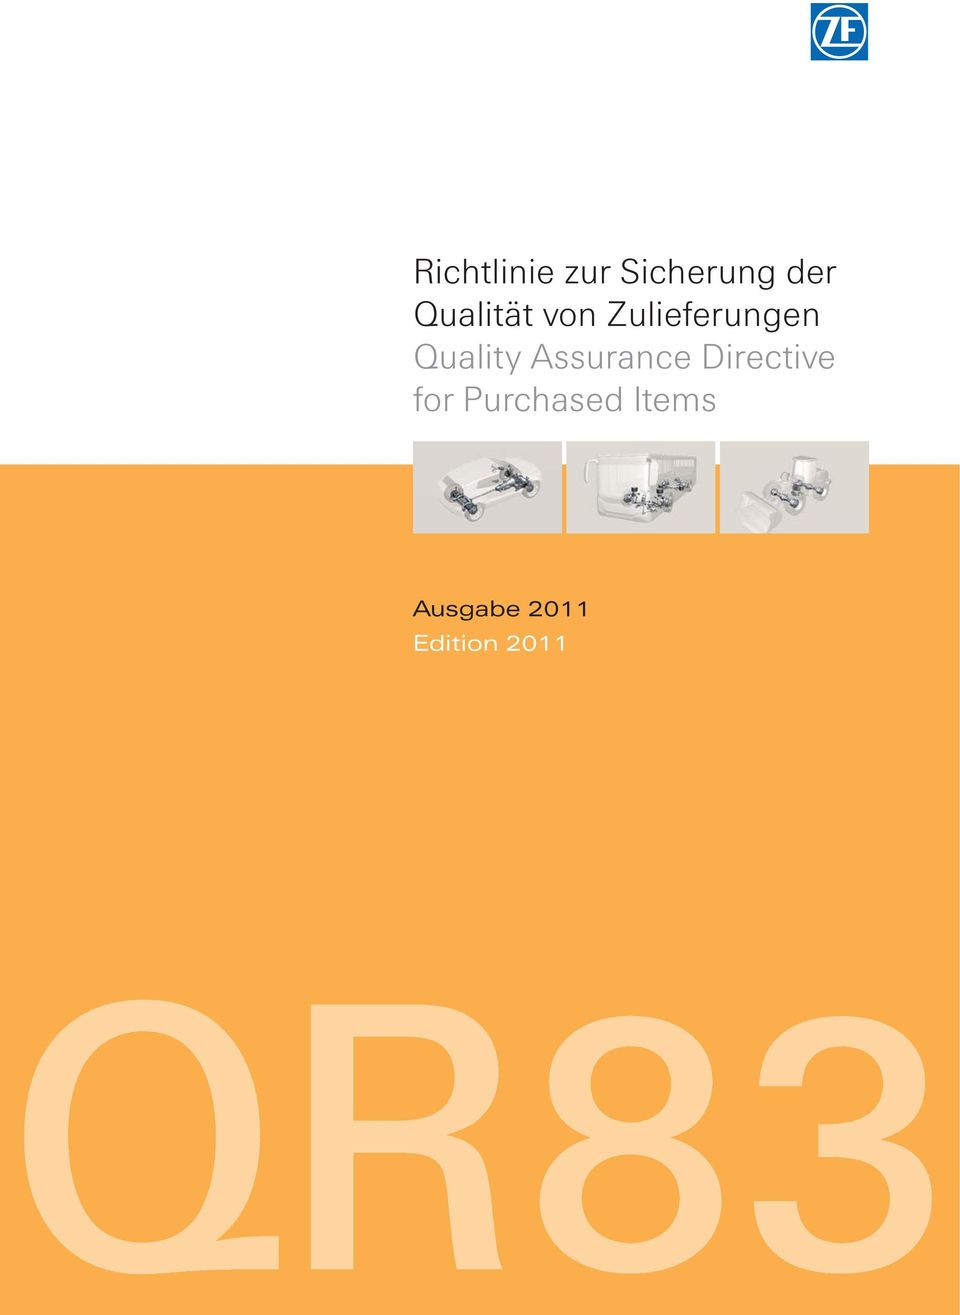 Quality Assurance Directive for